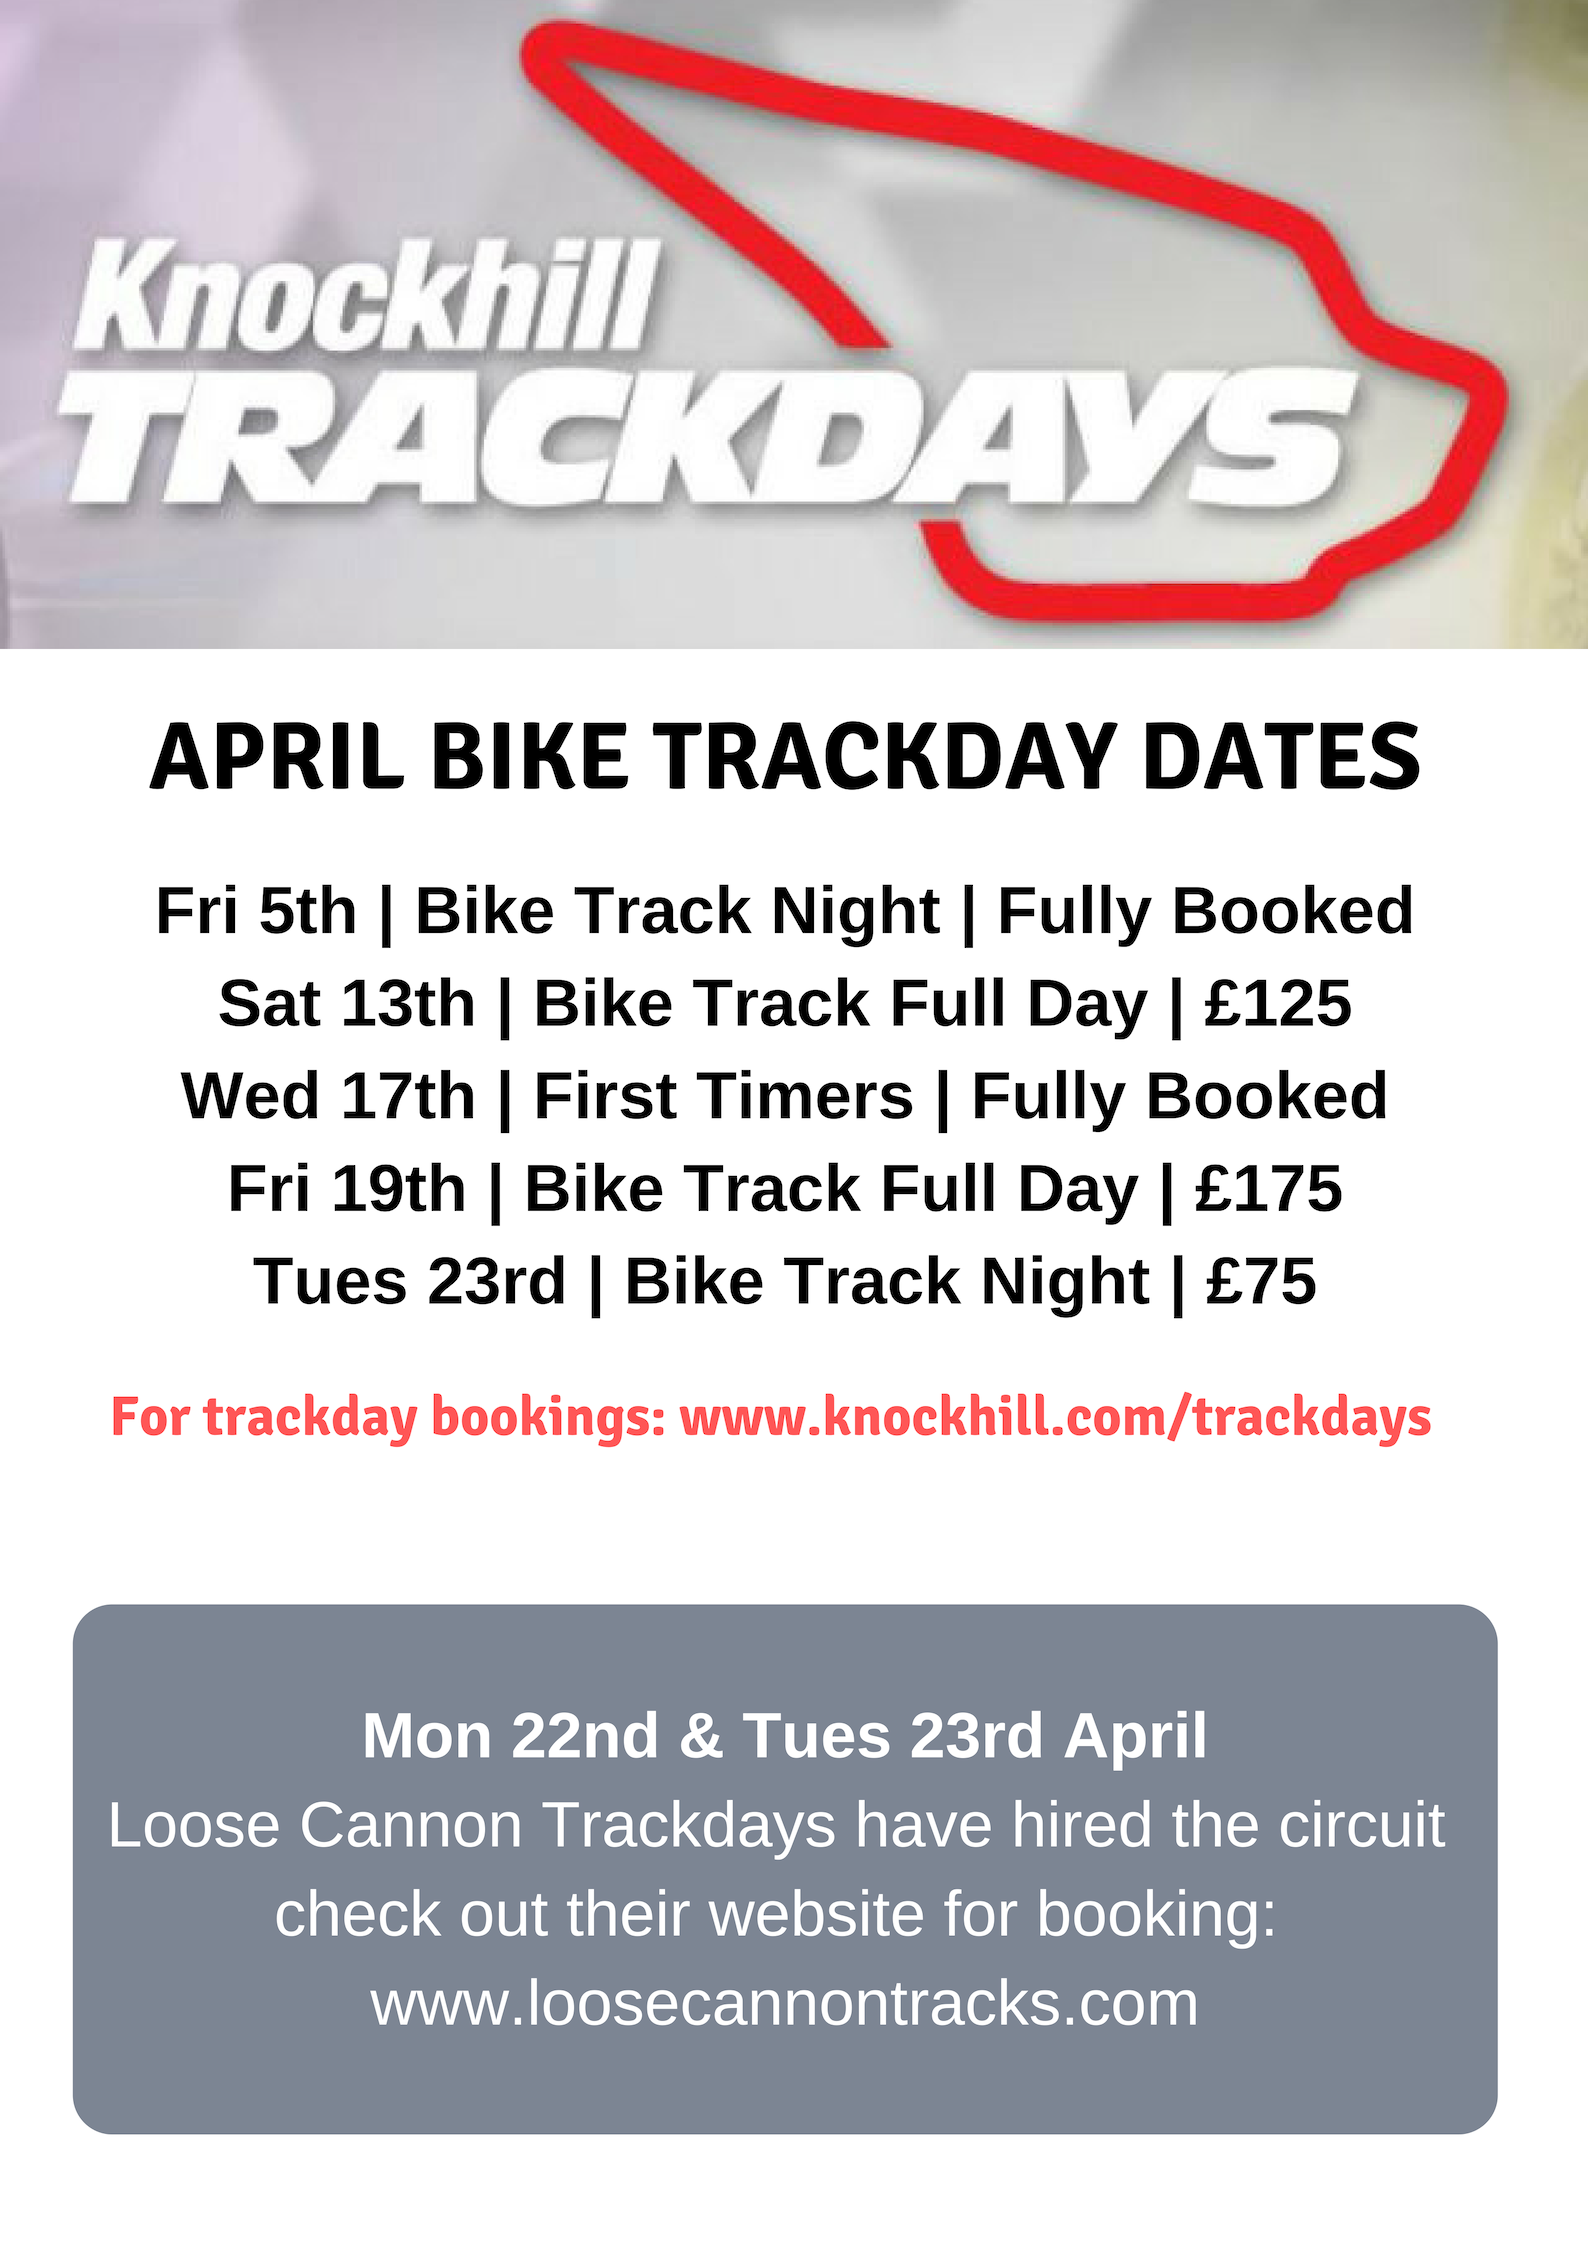 APRIL BIKE TRACKDAY DATES (3)